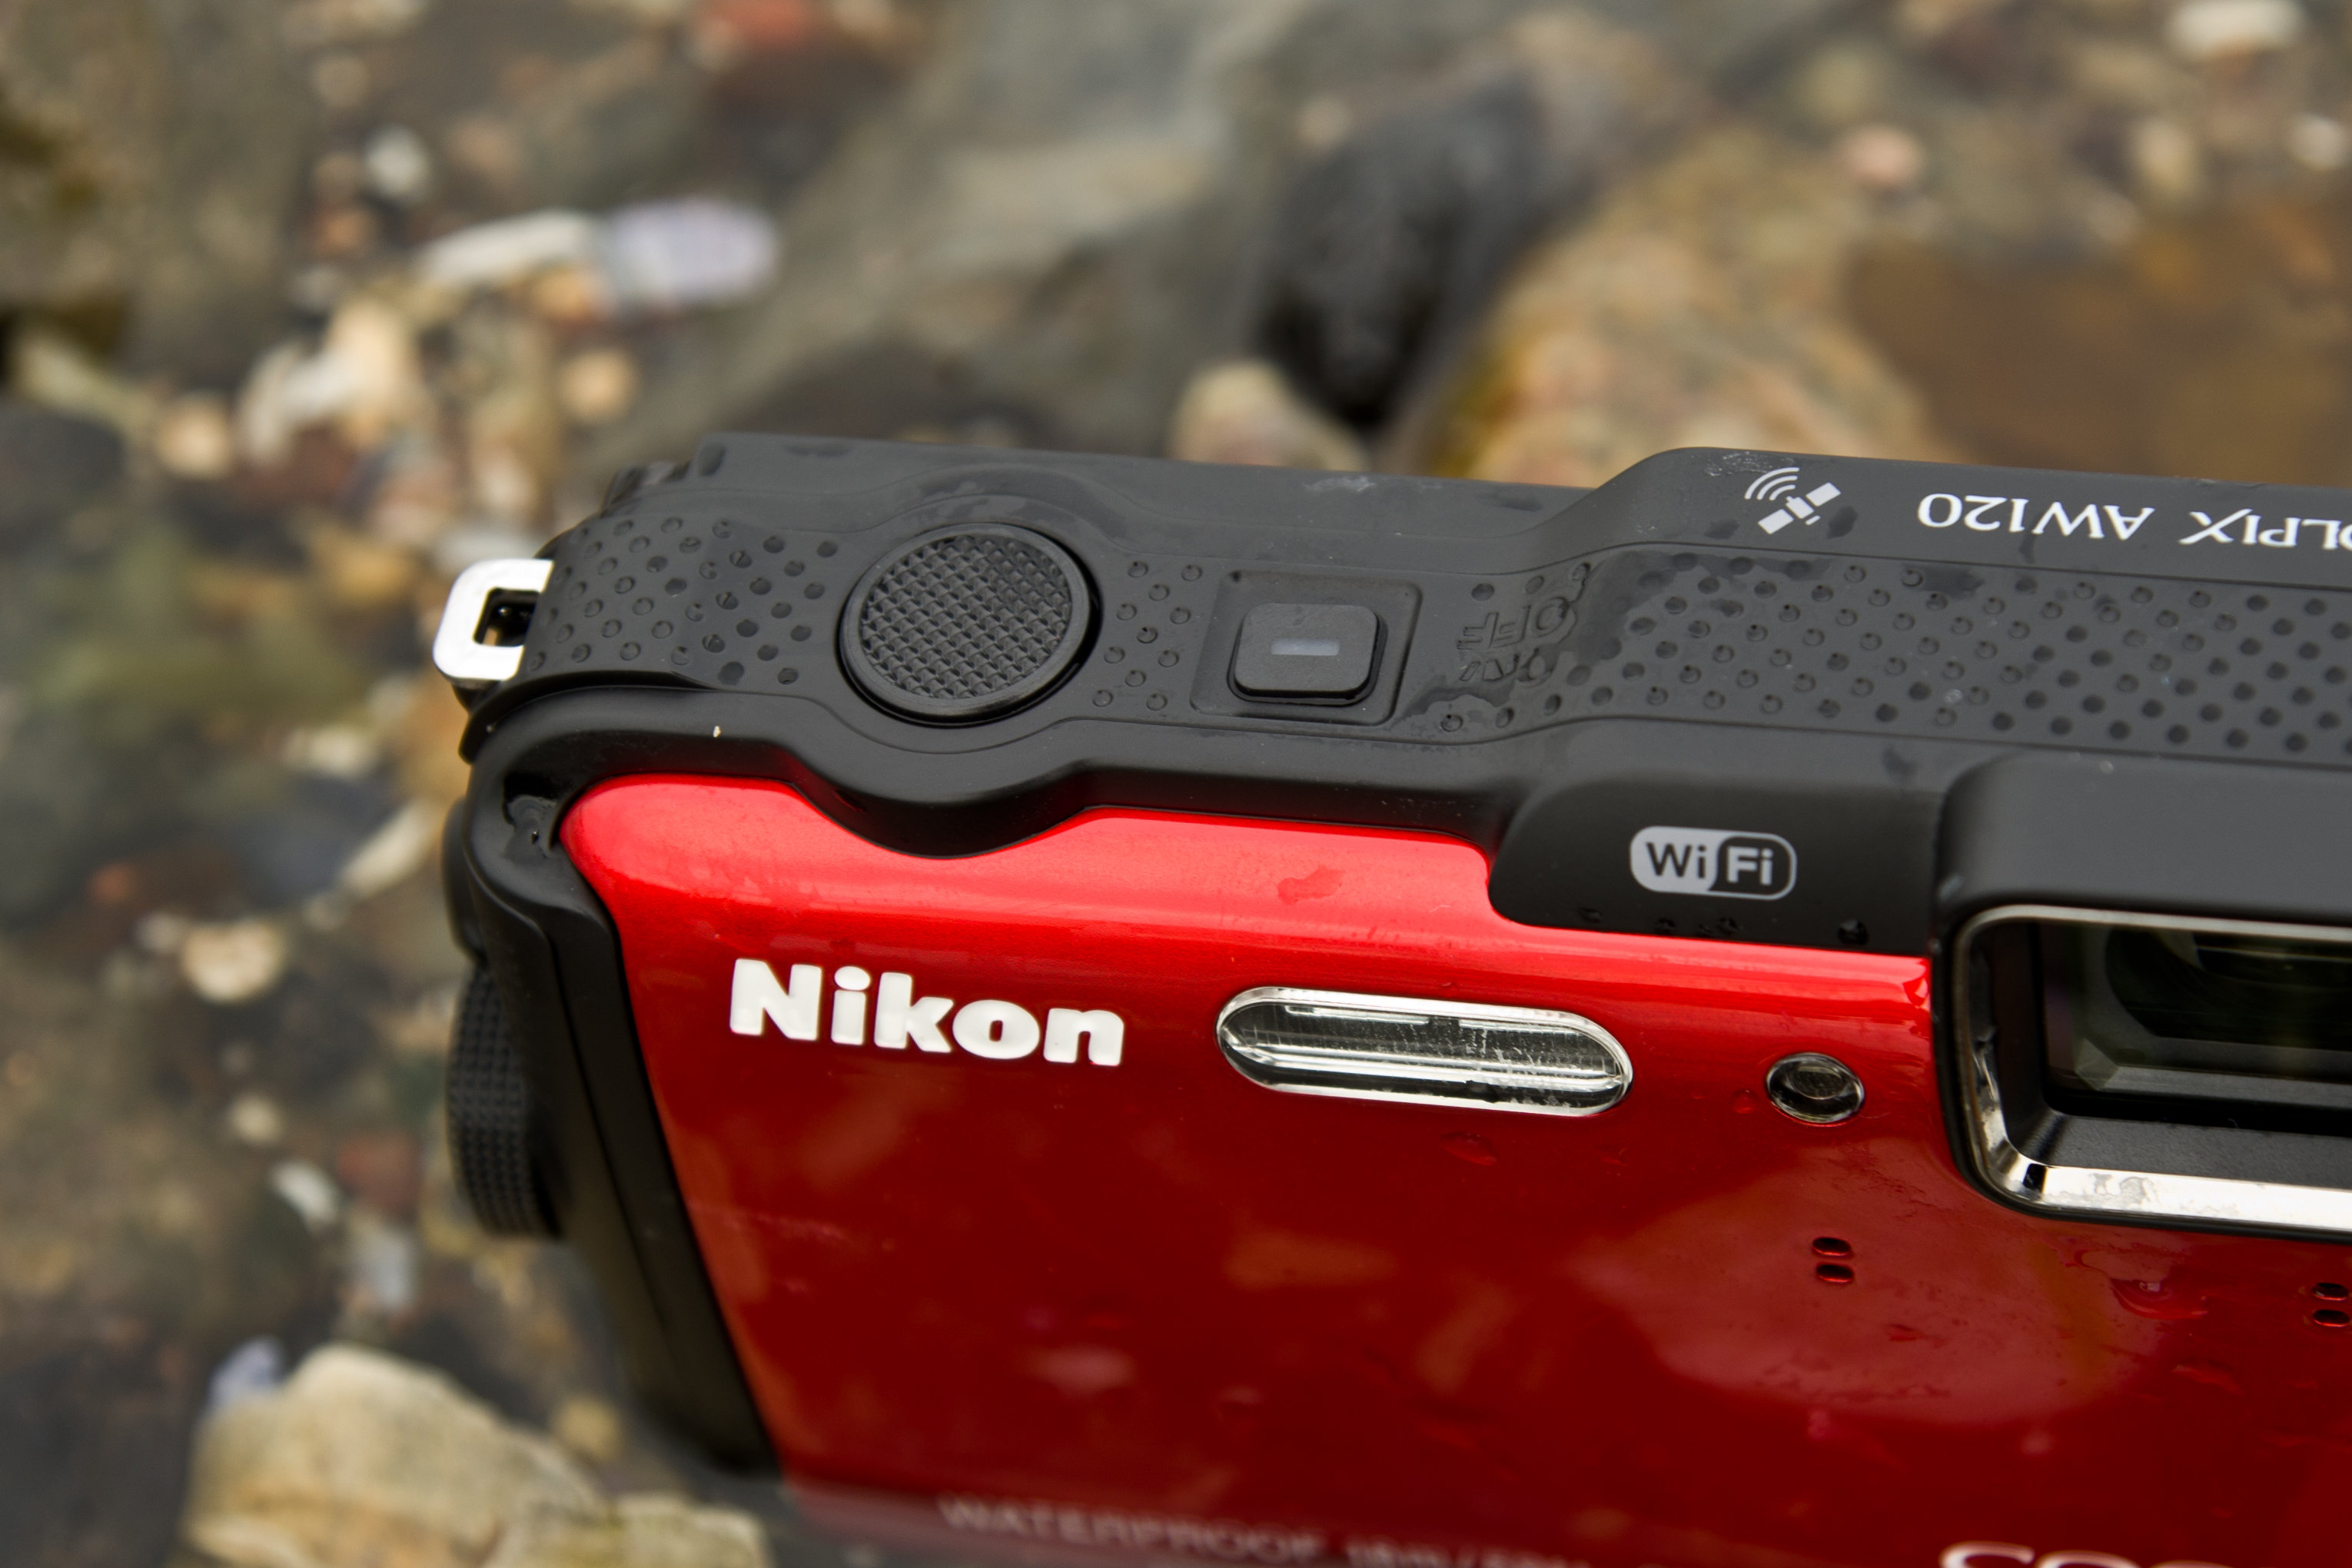 A shot of the Nikon Coolpix AW120's shutter.